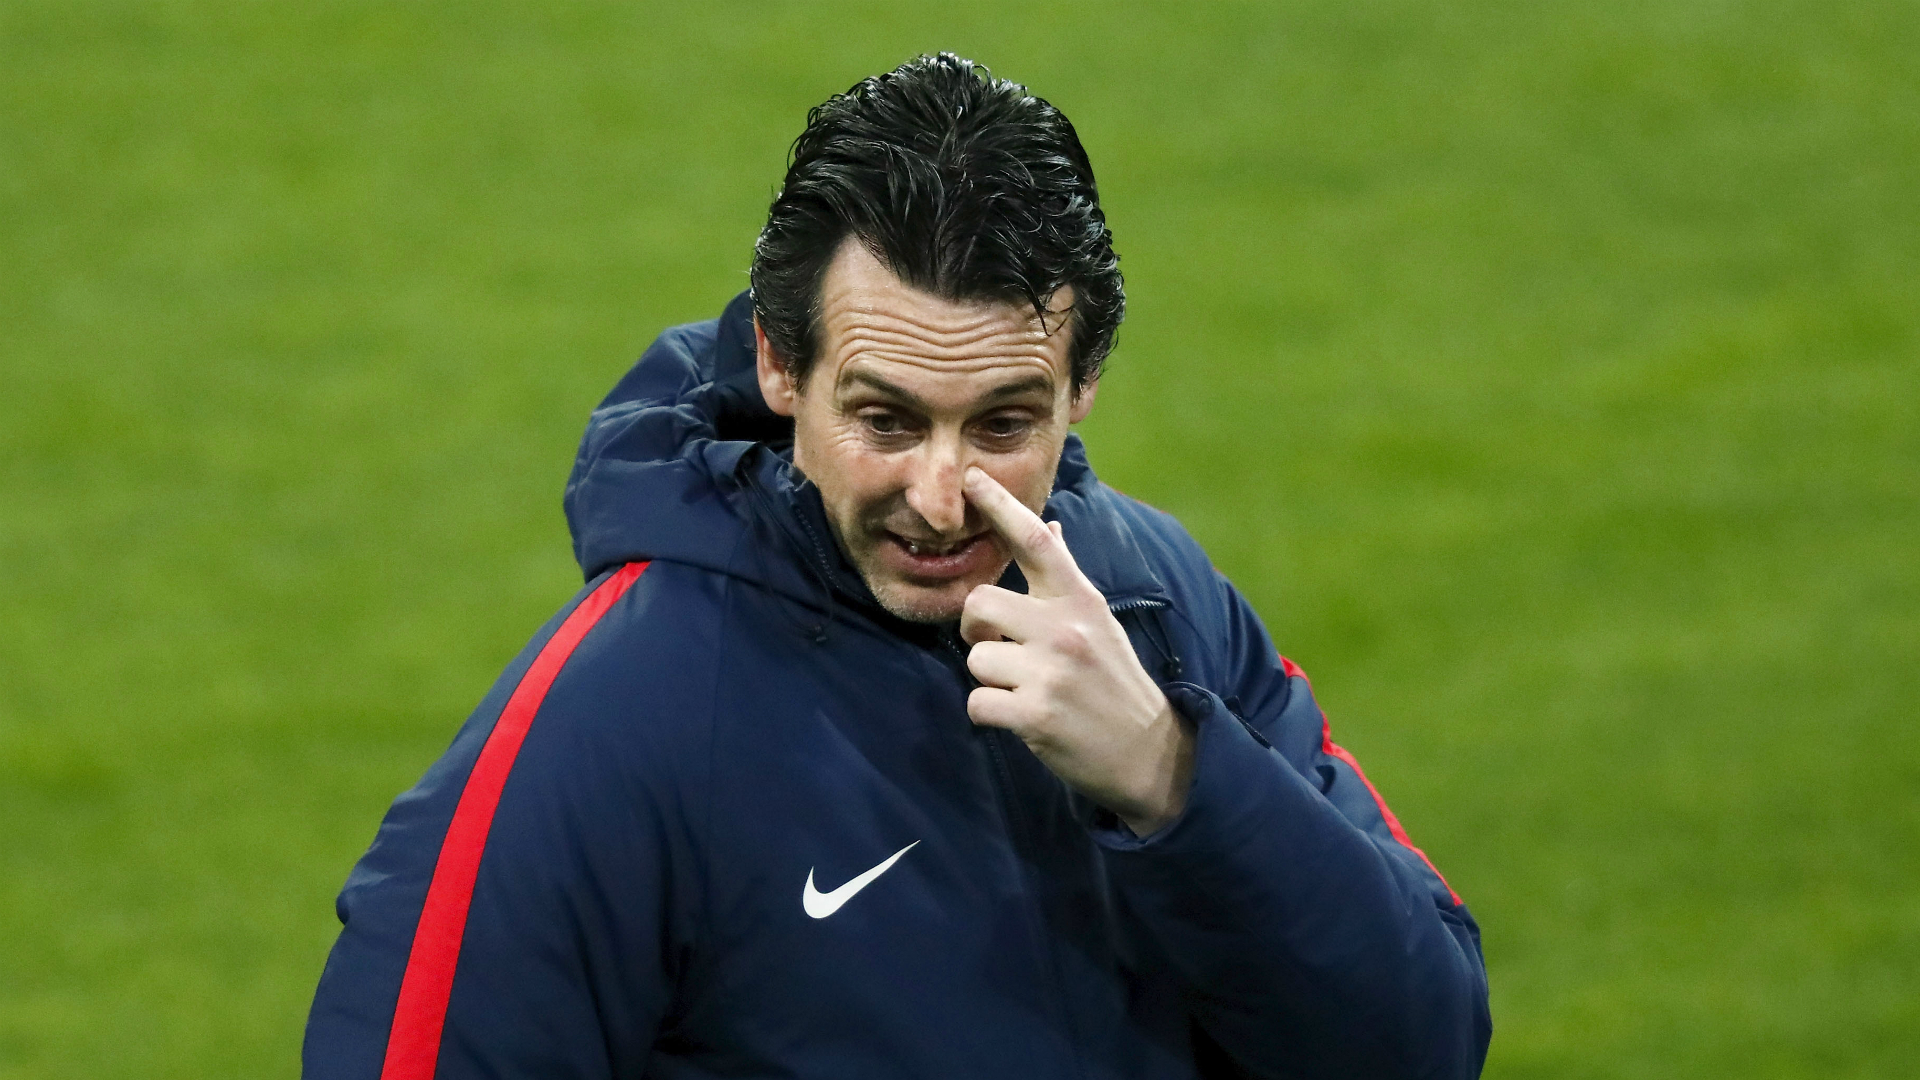 A 'Real'ity check for PSG